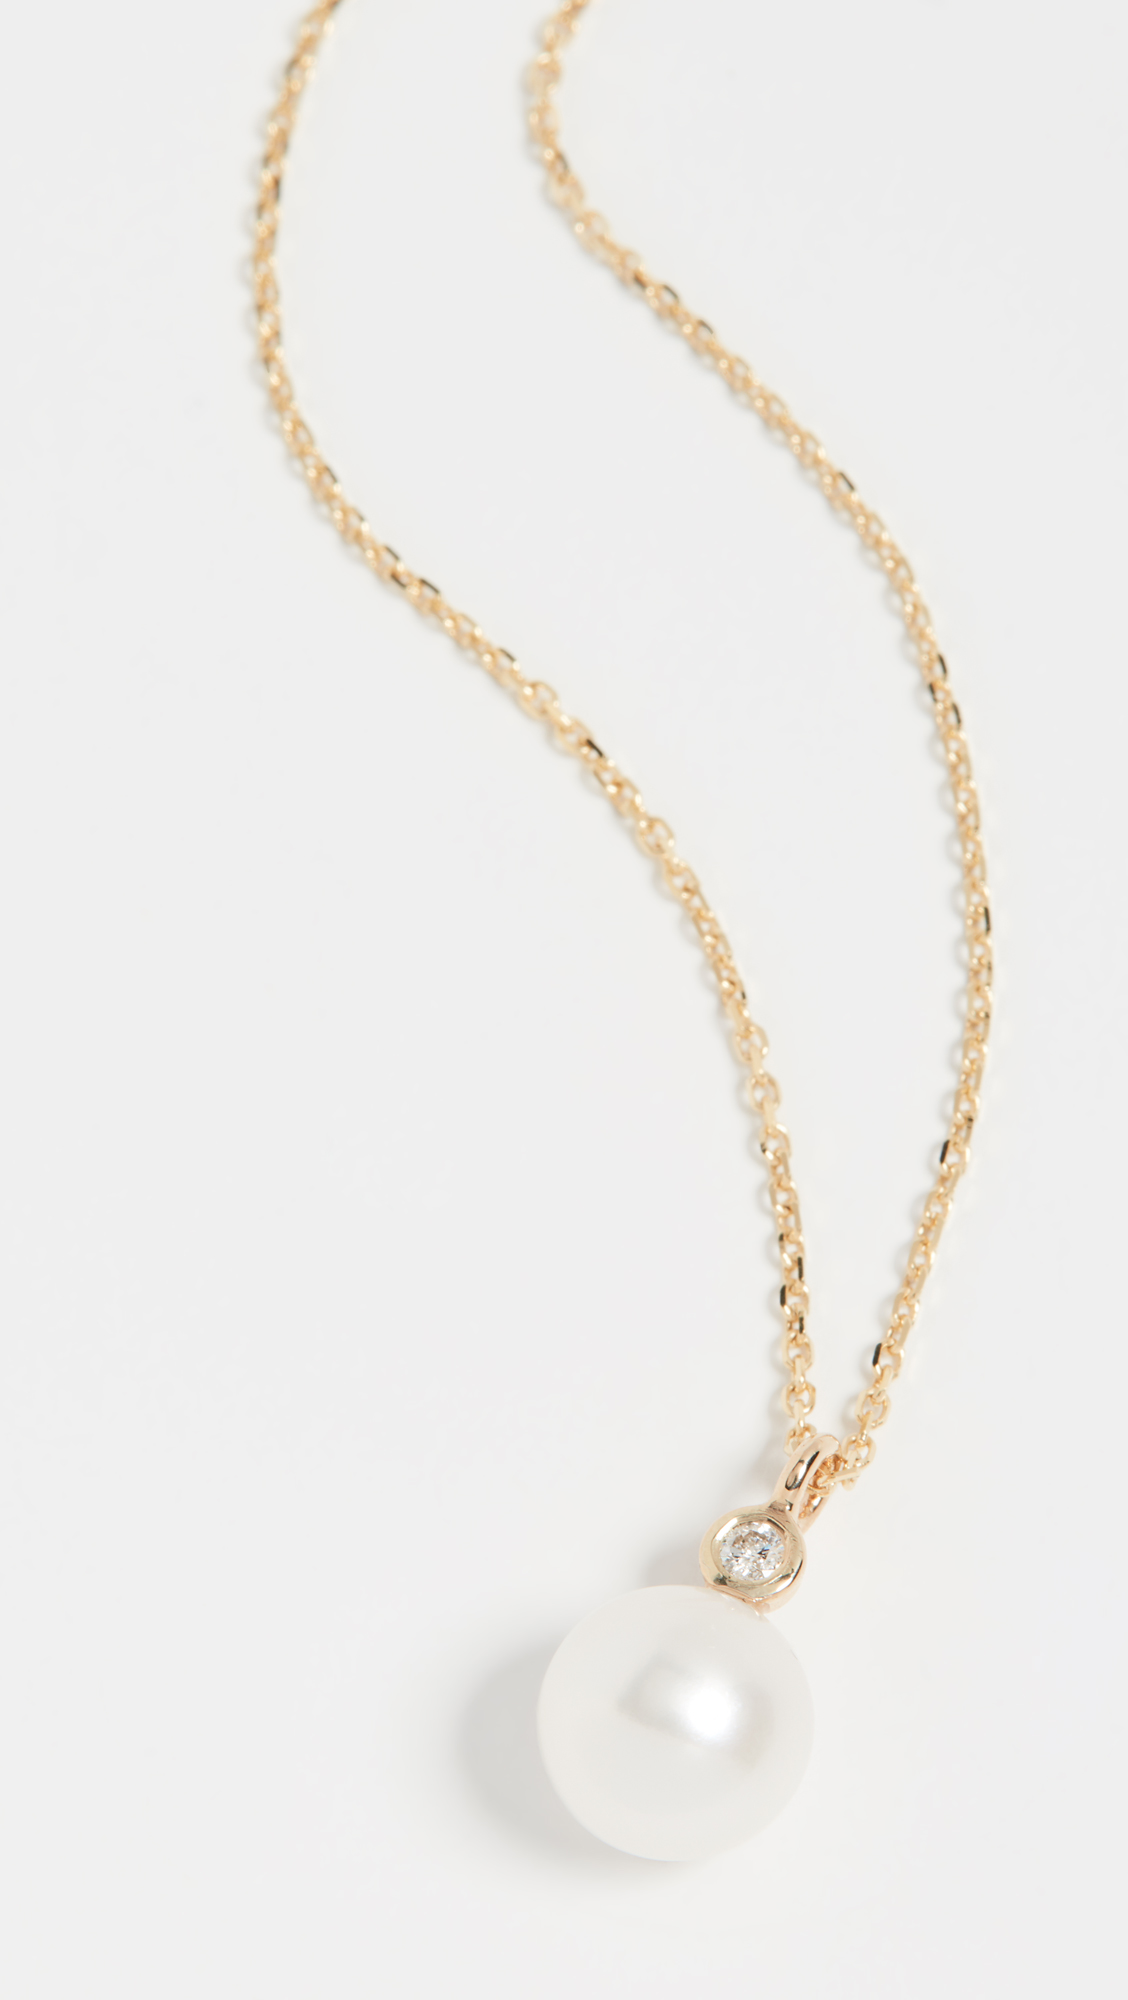 Pearl and Diamond Necklace 14K Gold